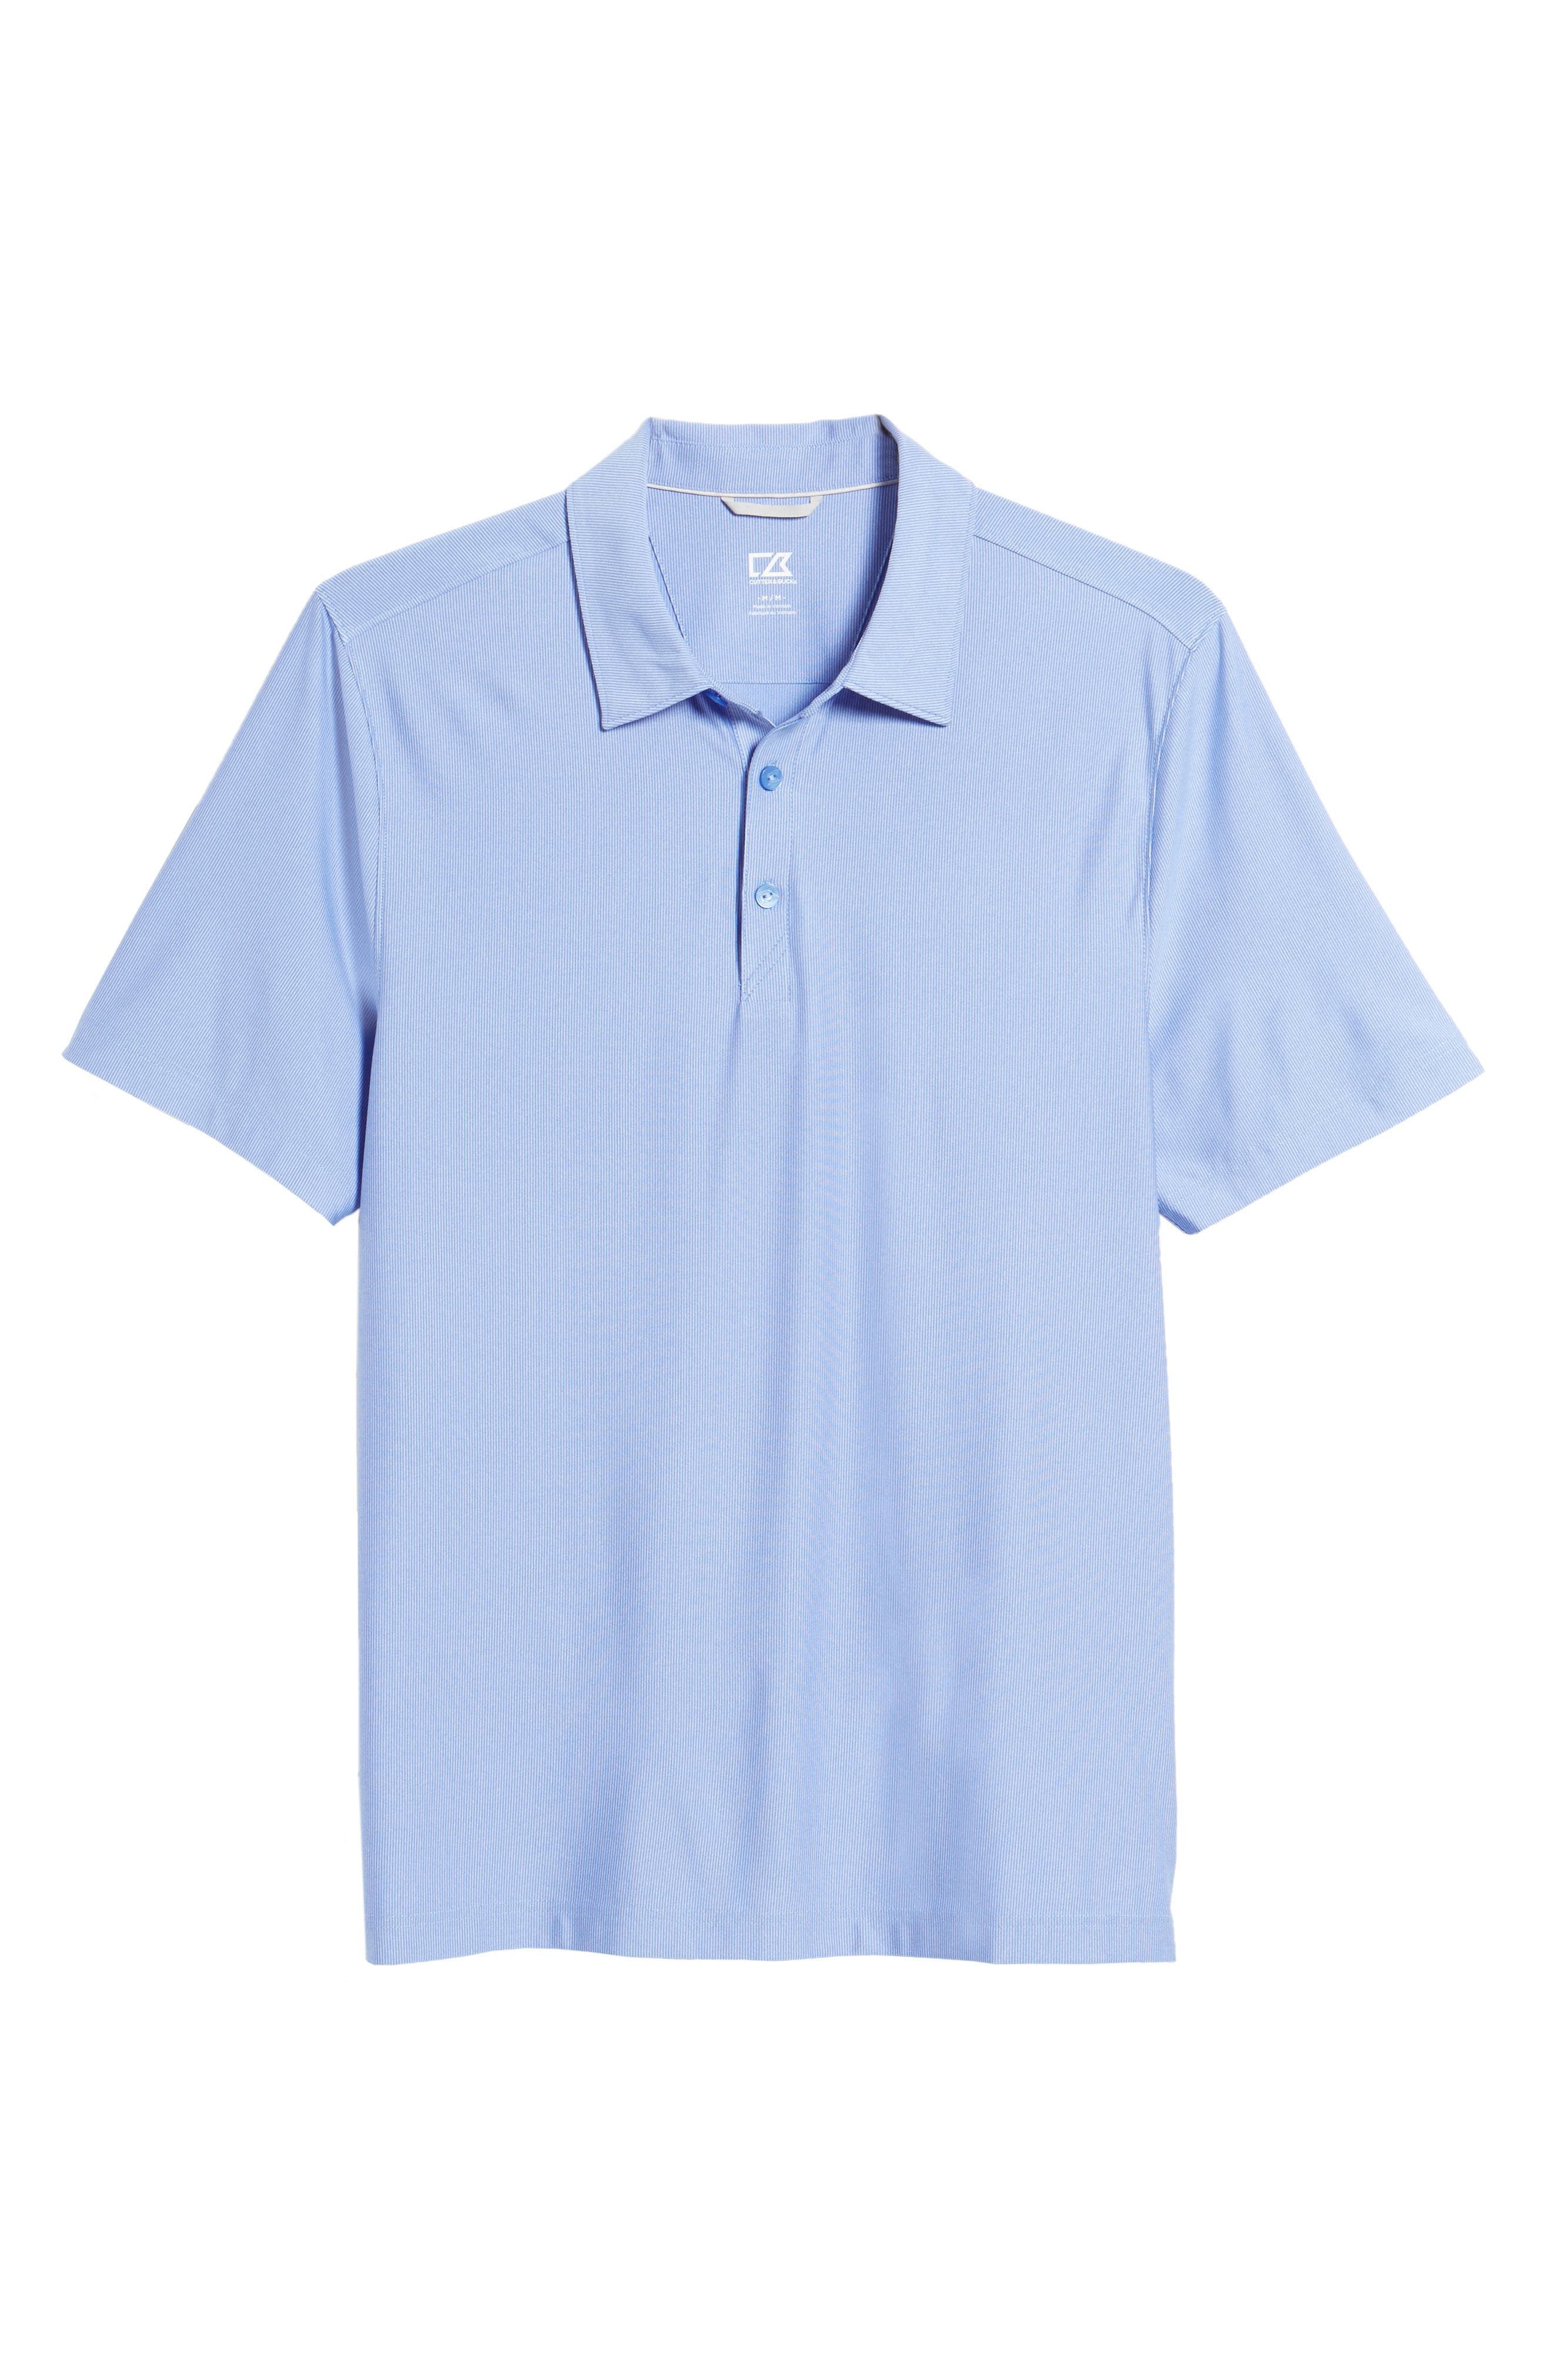 Cunningham Polo,                             Alternate thumbnail 6, color,                             523